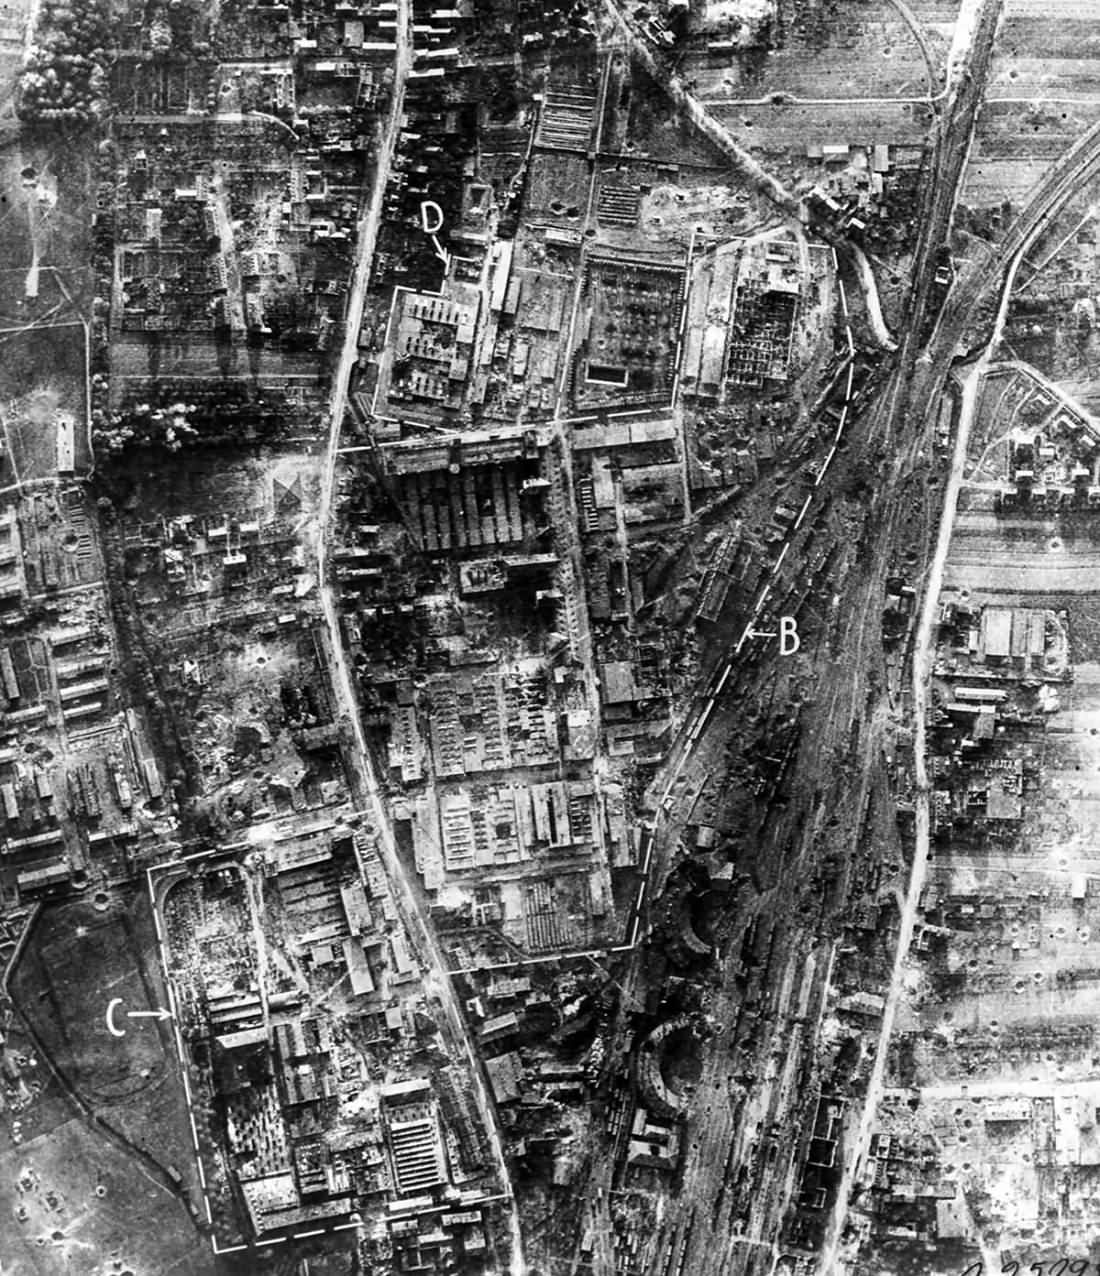 Bombed ball bearing industry at Schweinfurt